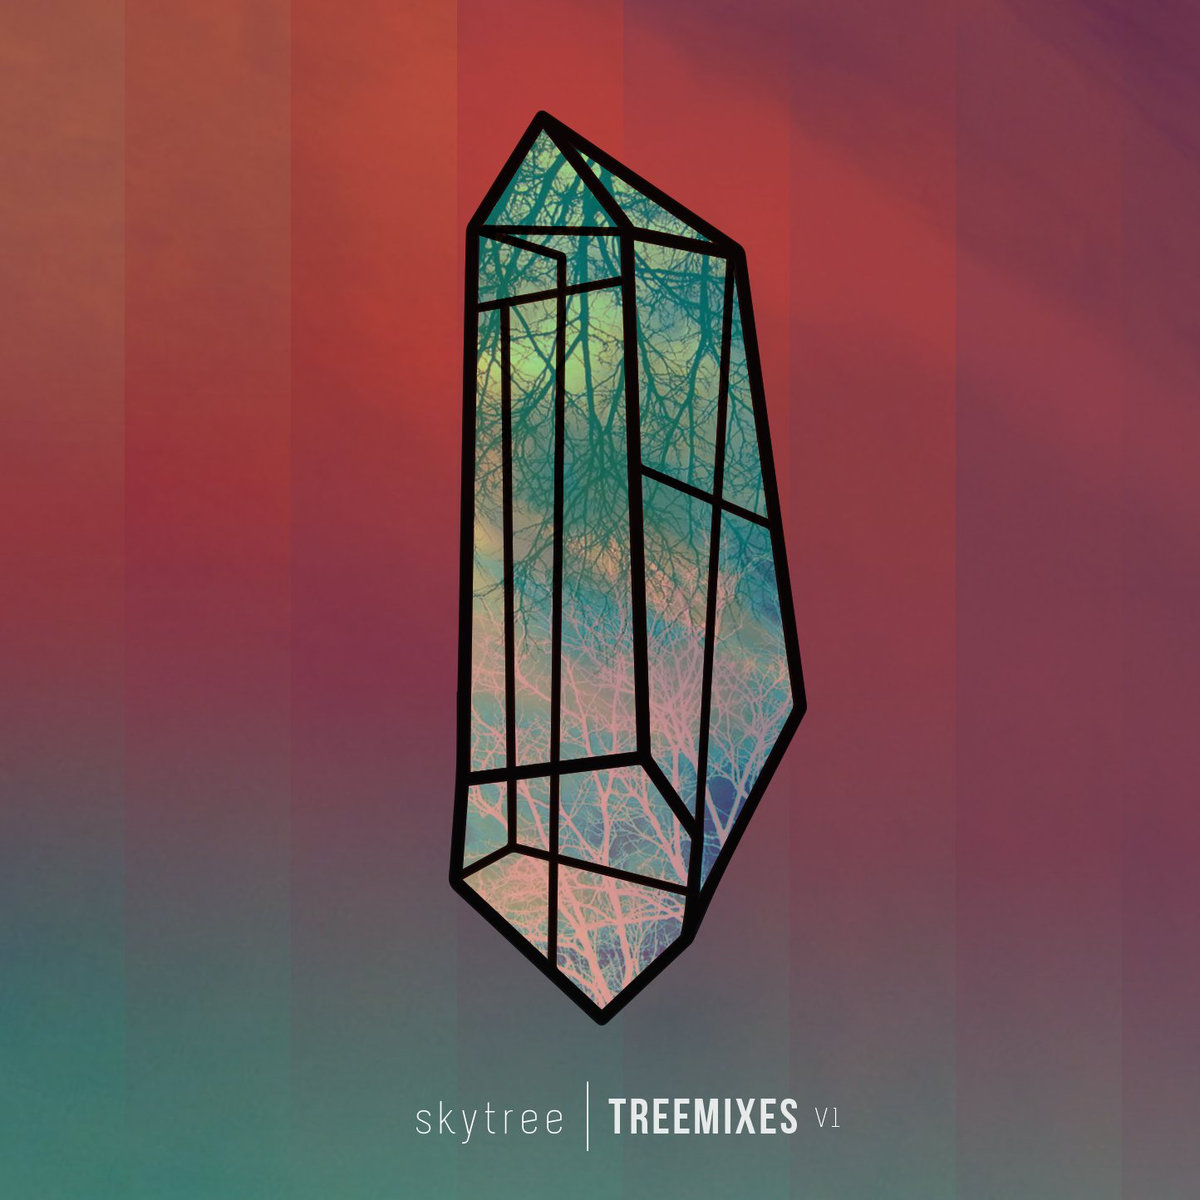 Skytree - Grandfather Twilight (Futexture's re-dusking) @ 'Treemixes V1' album (Austin)